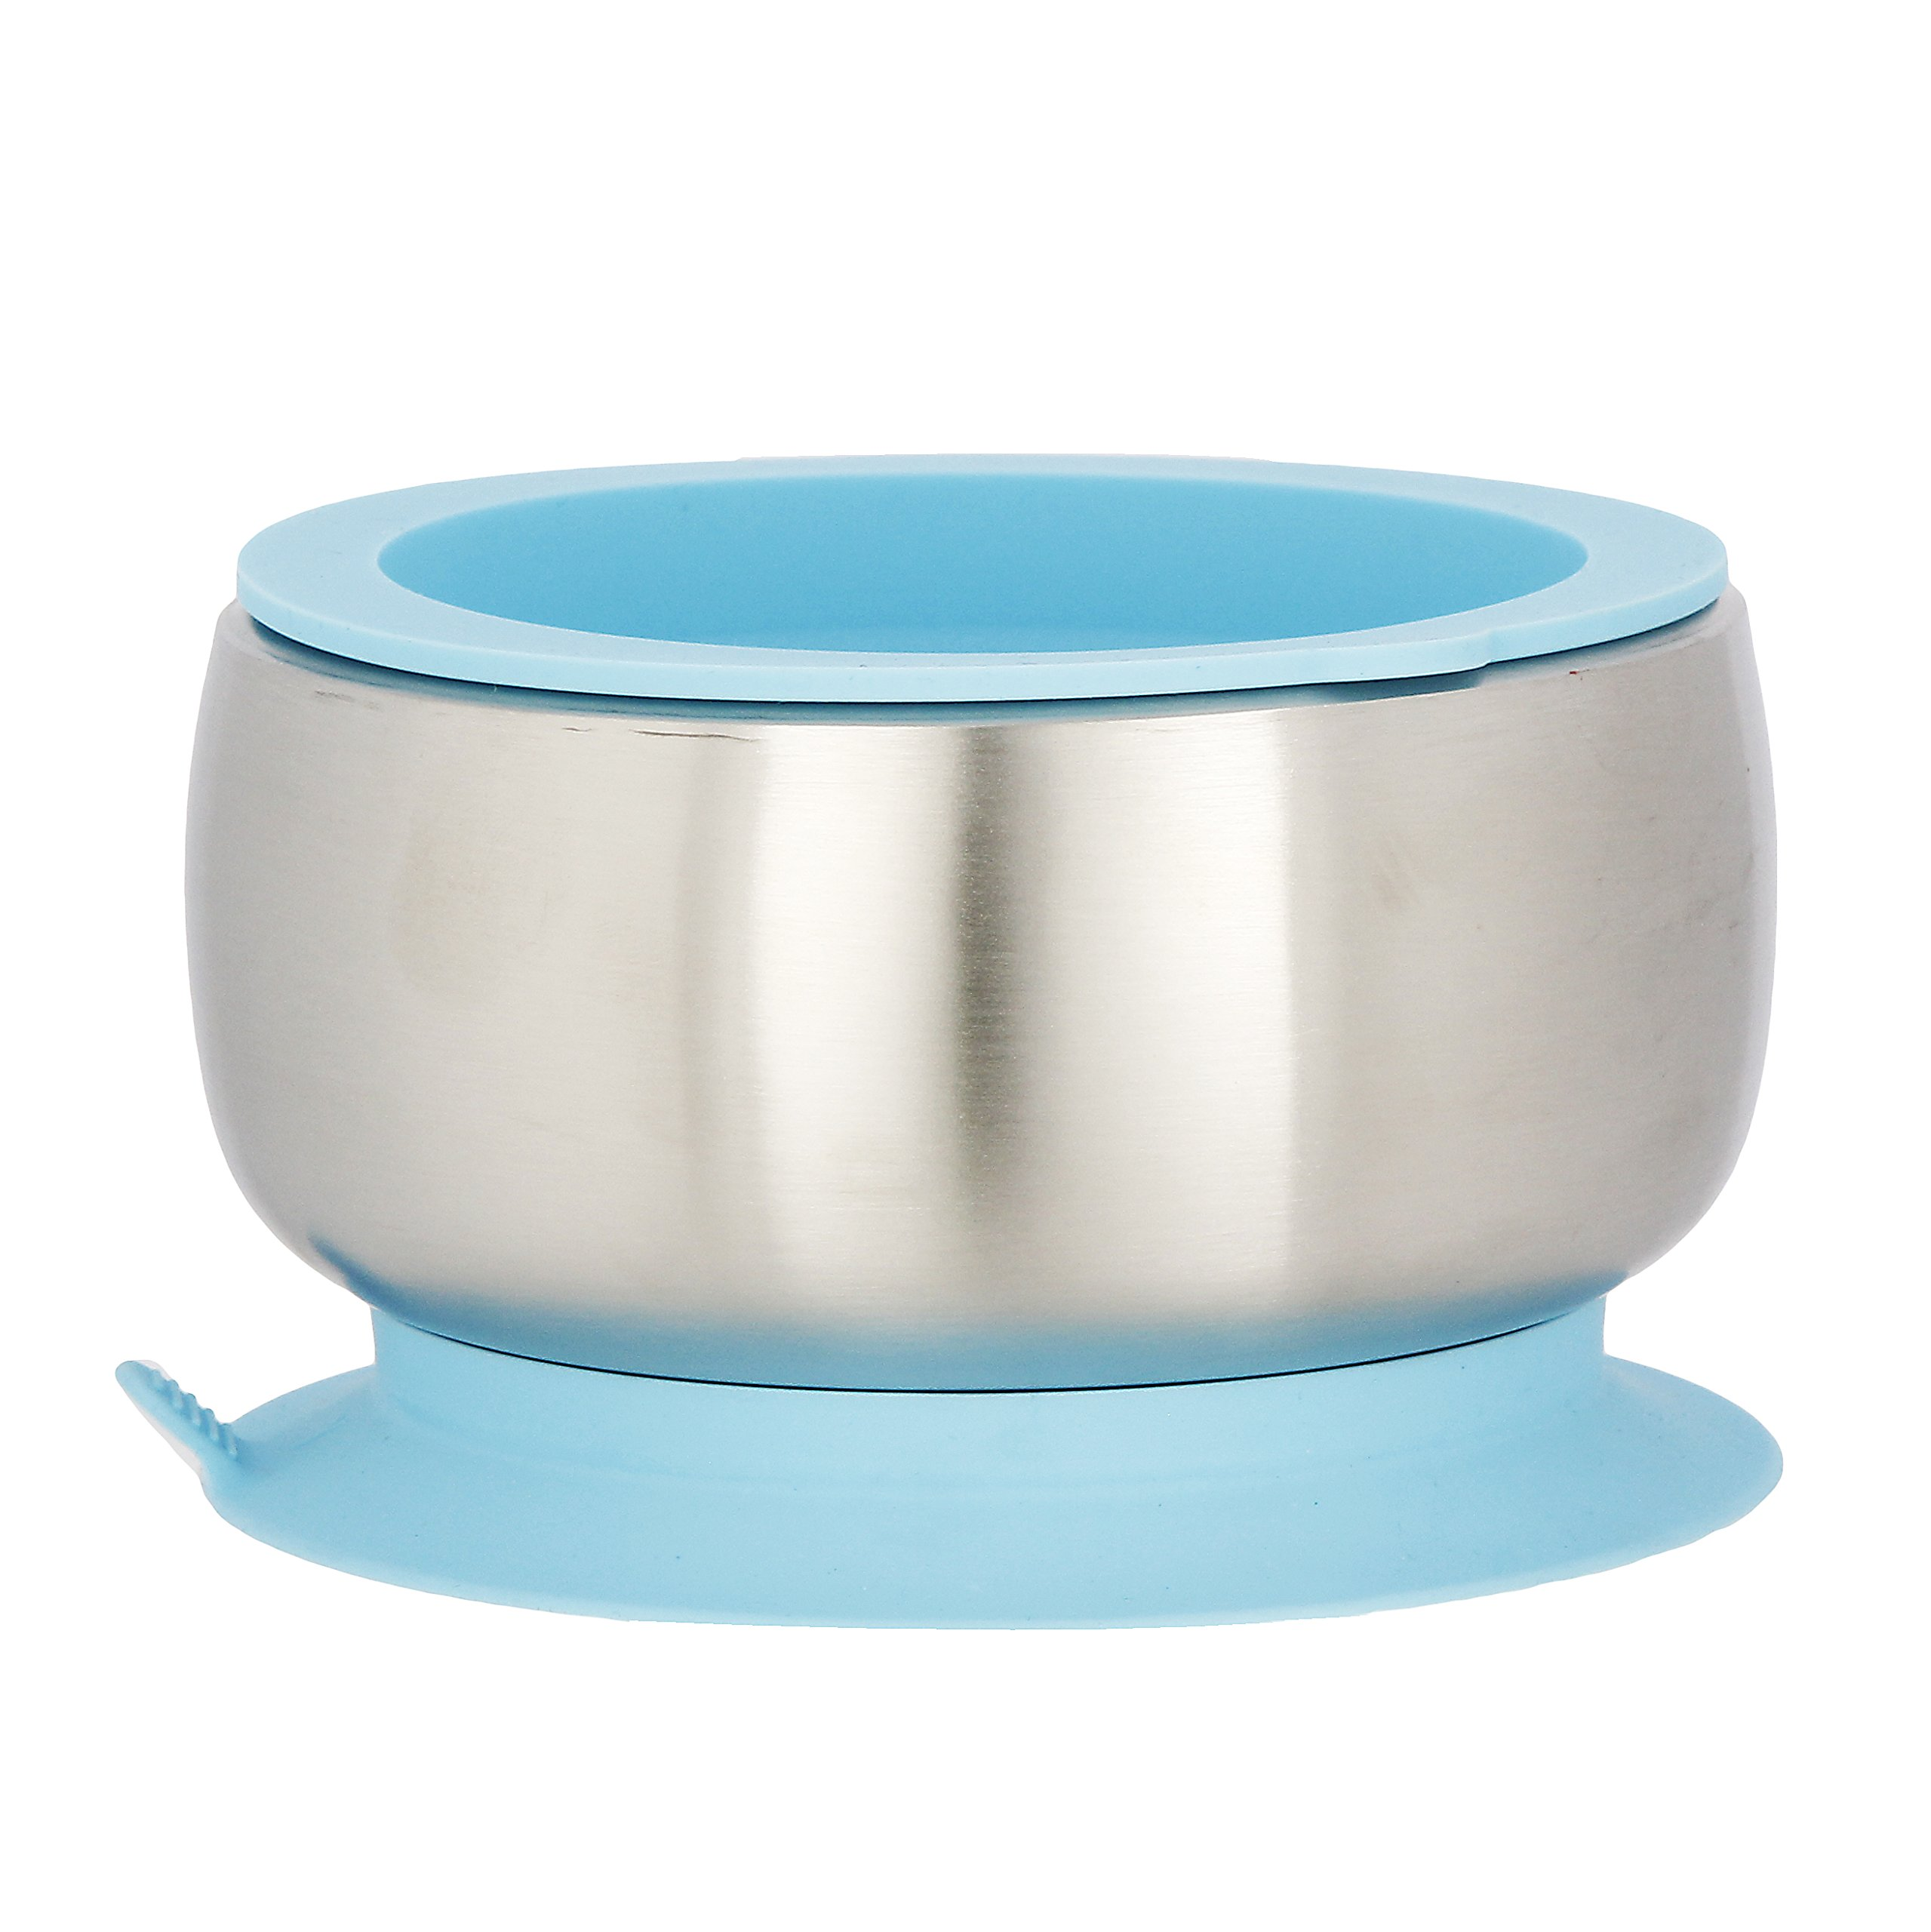 Avanchy Baby Toddler Feeding | Stainless Steel Stay Put Bowl Suction + Soft Container Safe Lid Set | BPA Free | Great Infant Gift Pack (Blue)